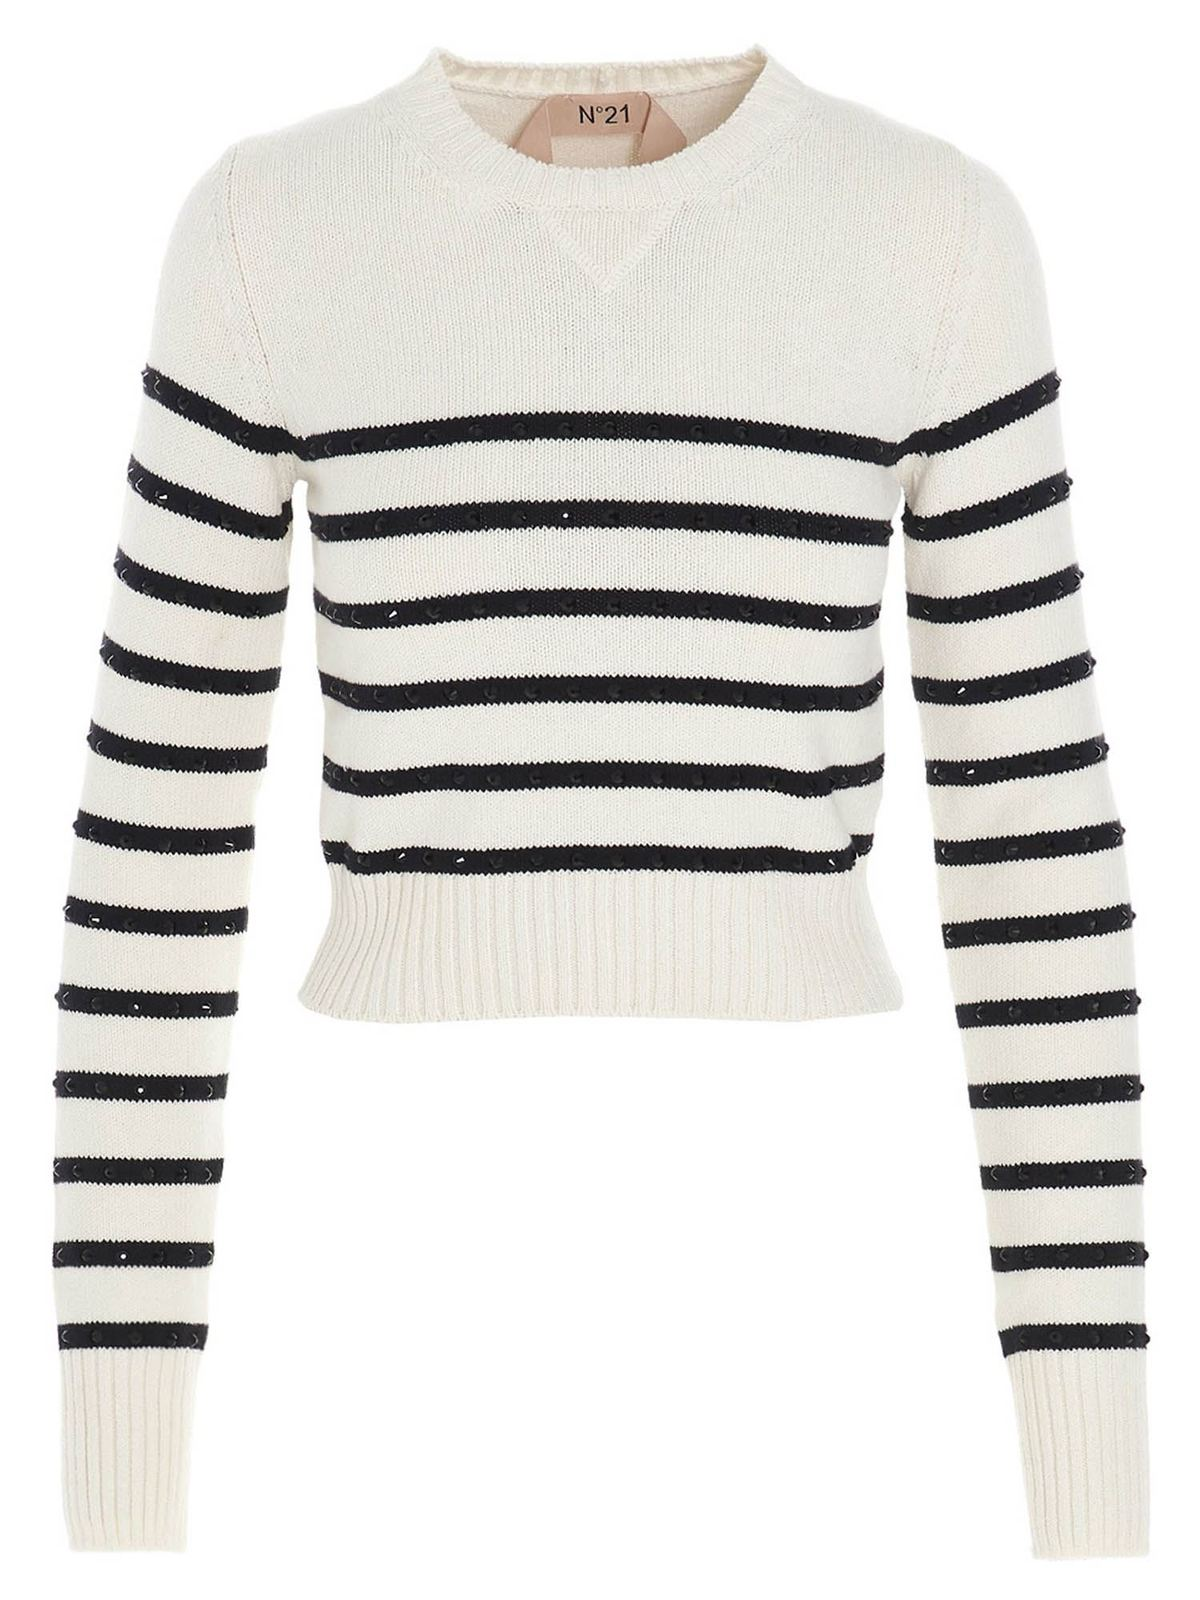 N°21 STRIPED CRYSTALS SWEATER IN BLACK AND WHITE